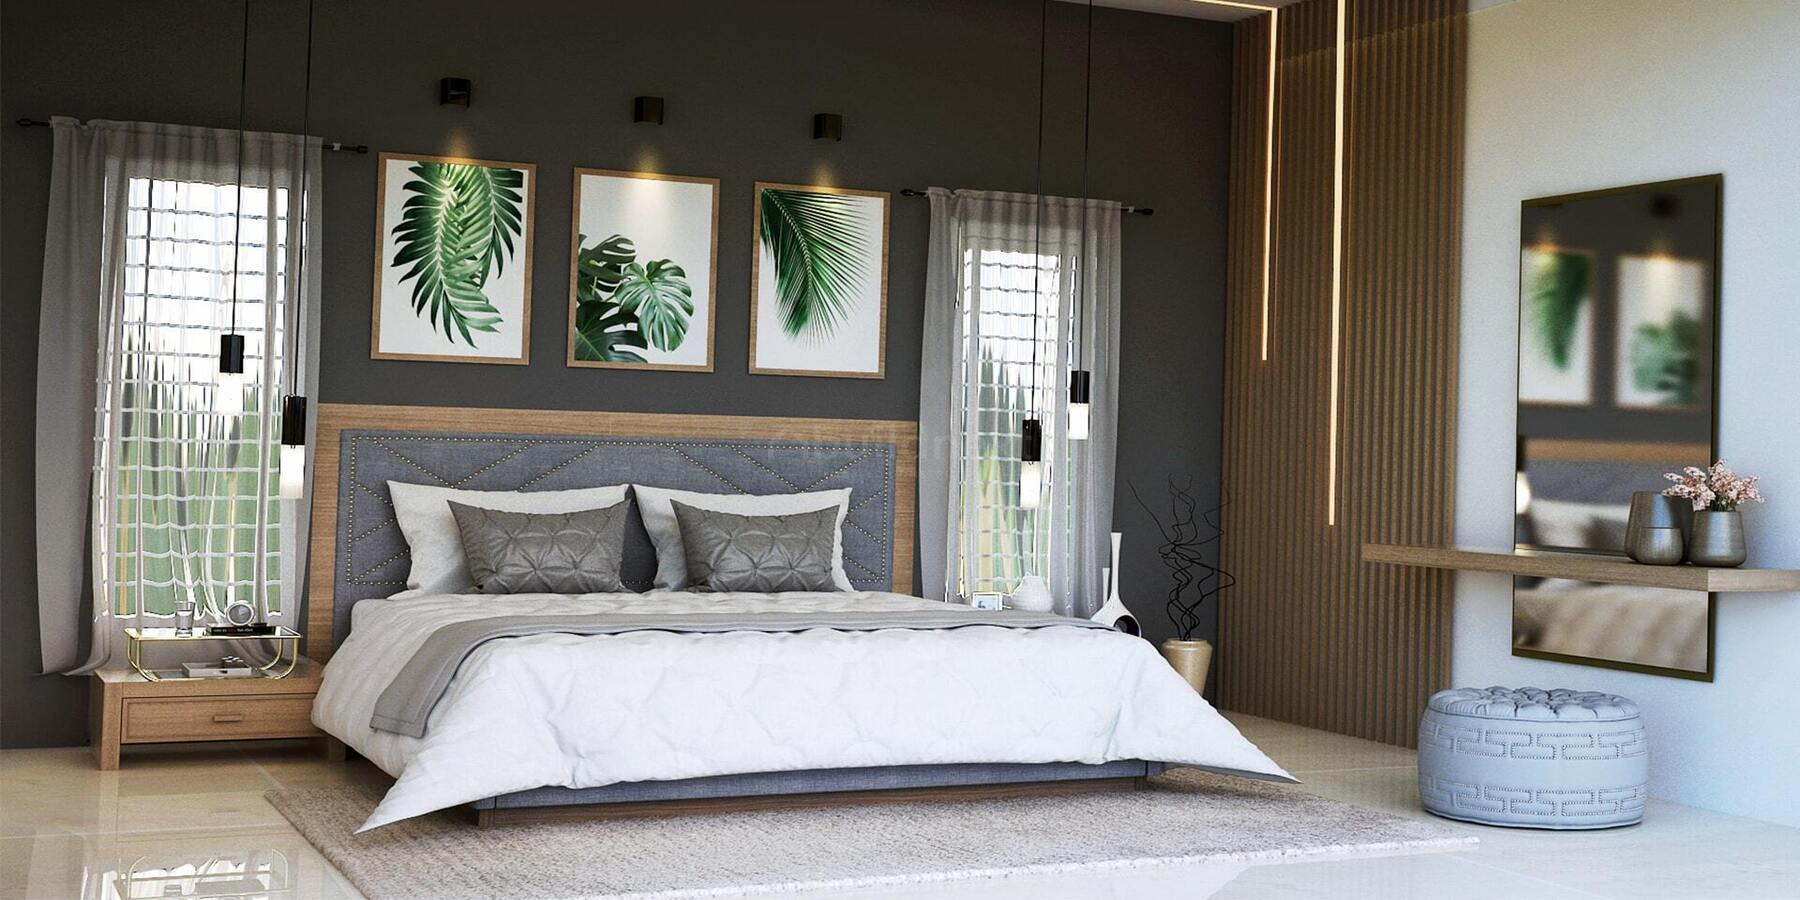 Top 10 Bedroom Design Ideas For 2021   BuildNext Connect